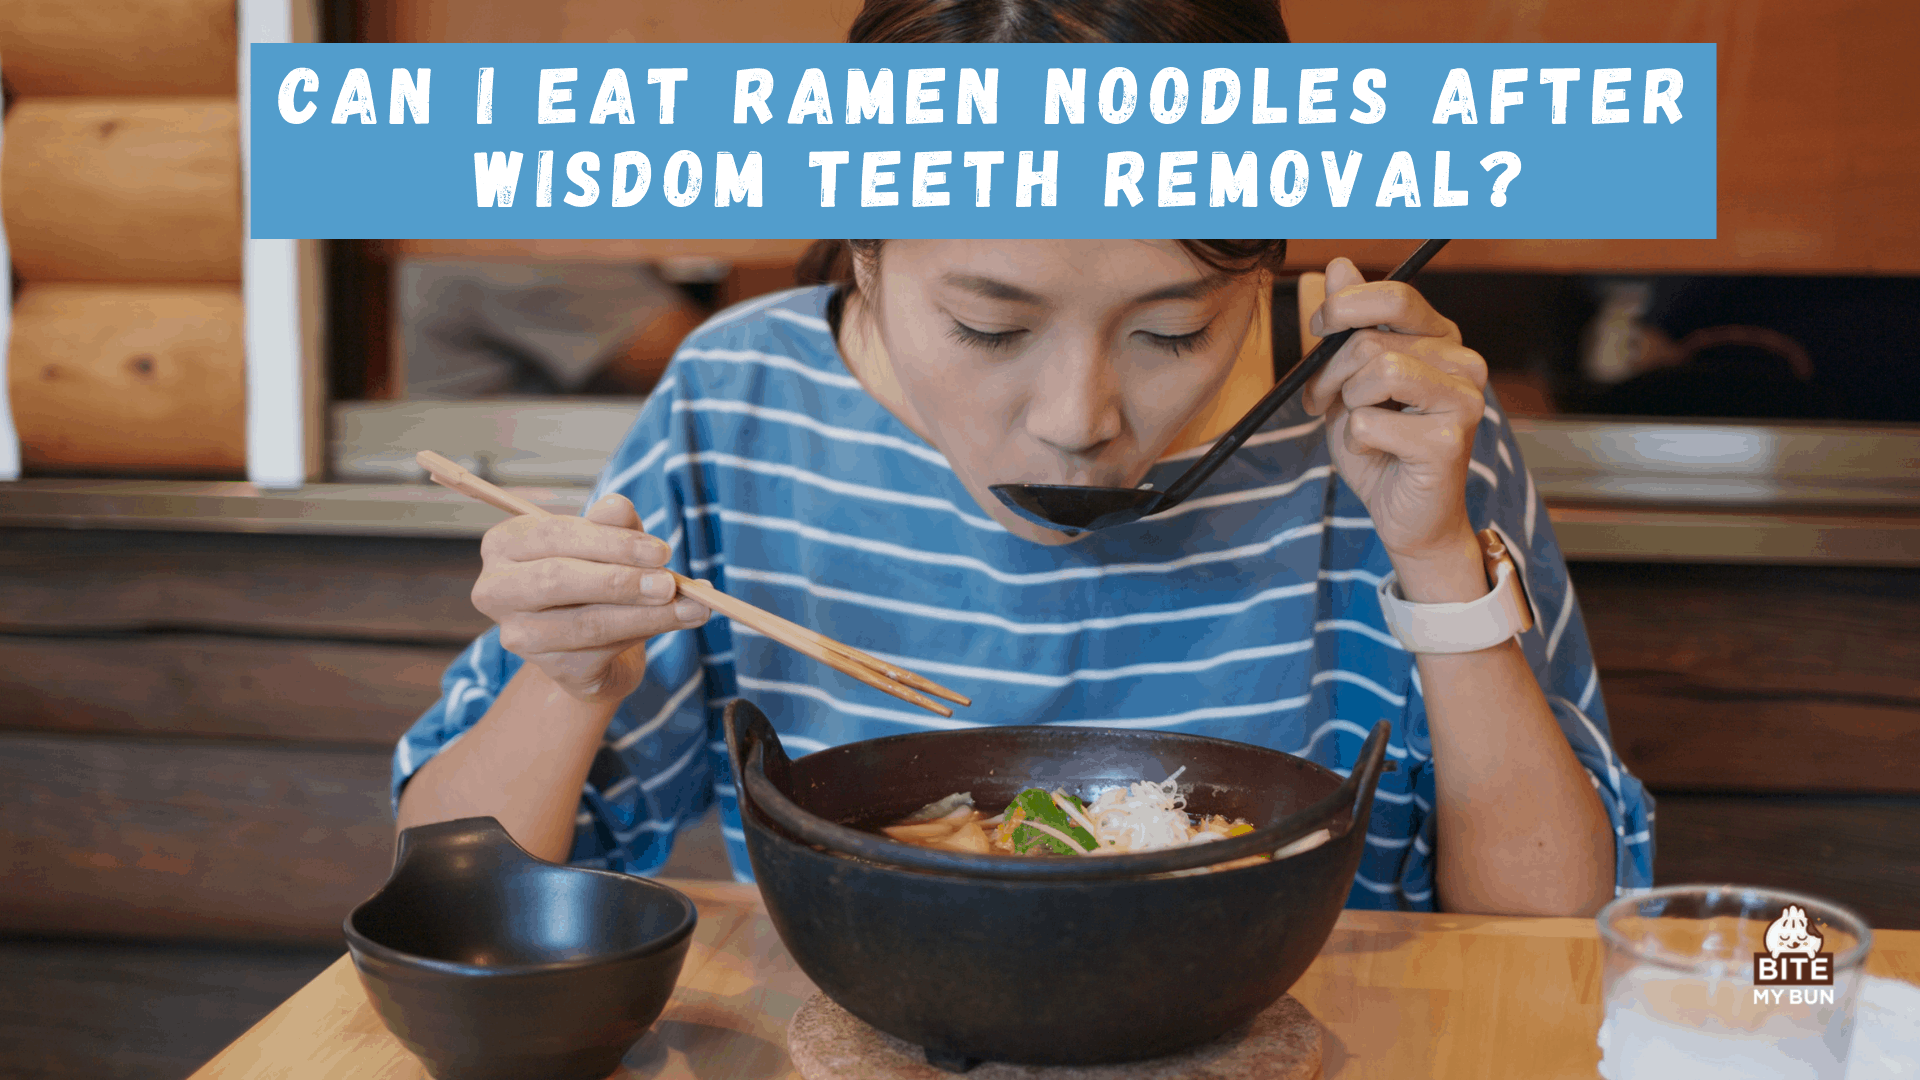 Can I eat ramen noodles after wisdom teeth removal?